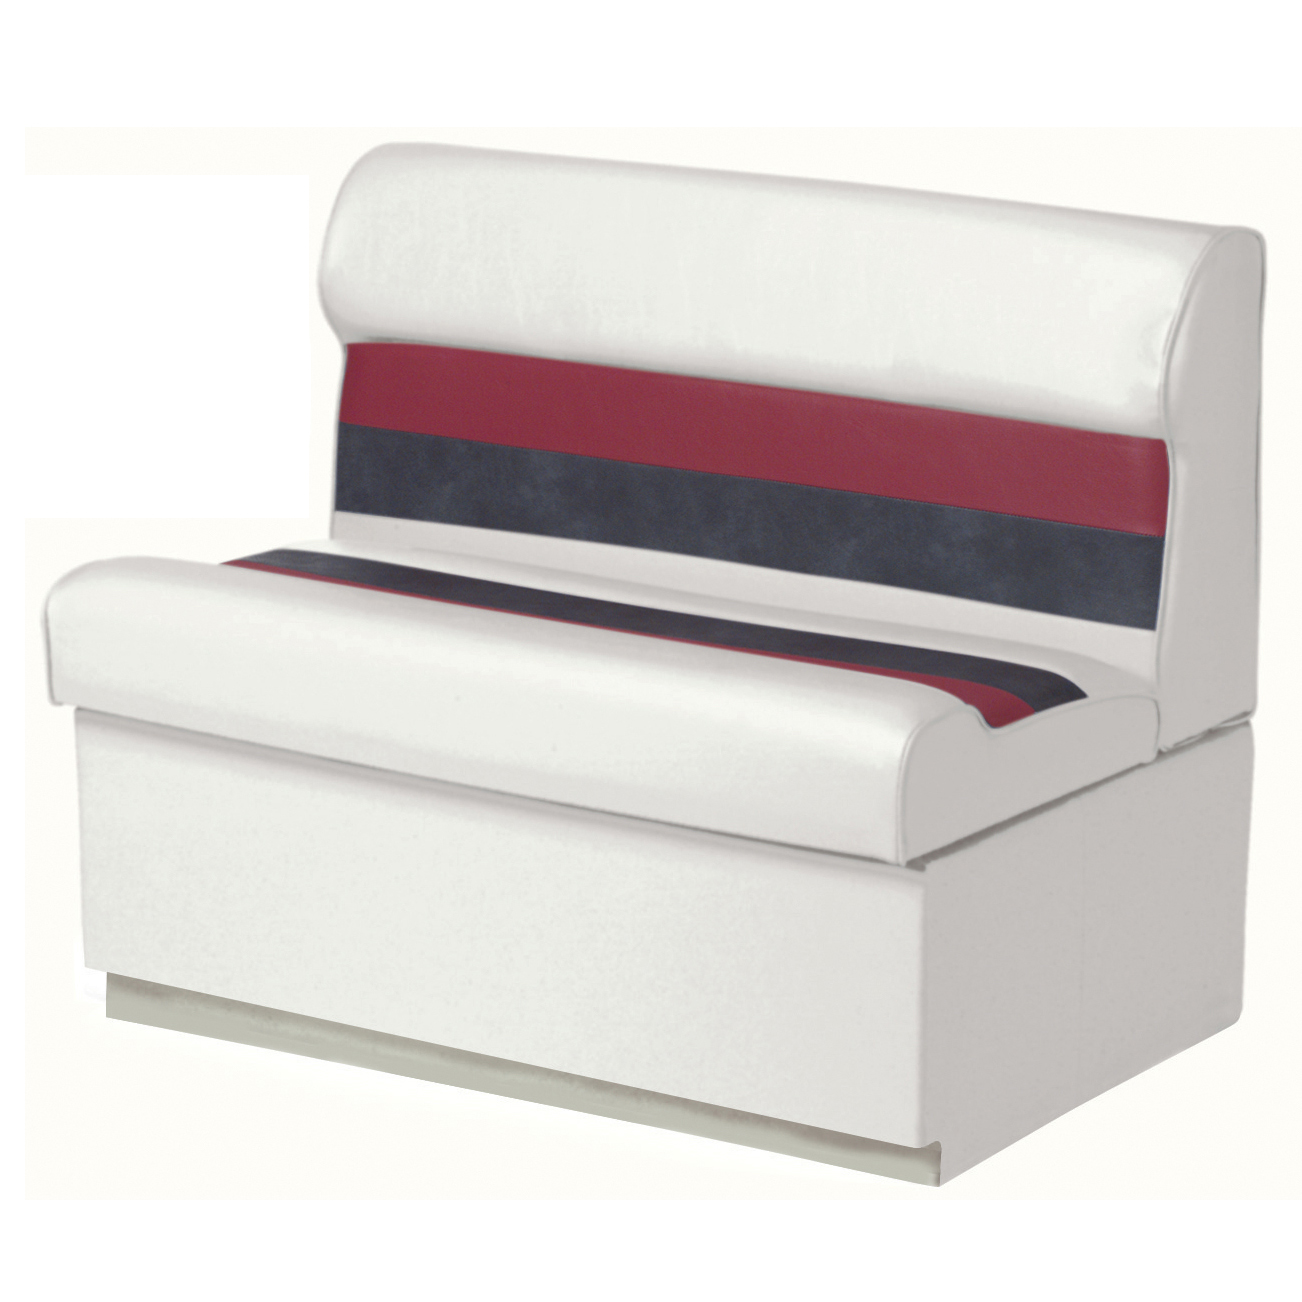 "Toonmate Deluxe Pontoon 36"" Wide Lounge Seat with Toe Kick Base, White"